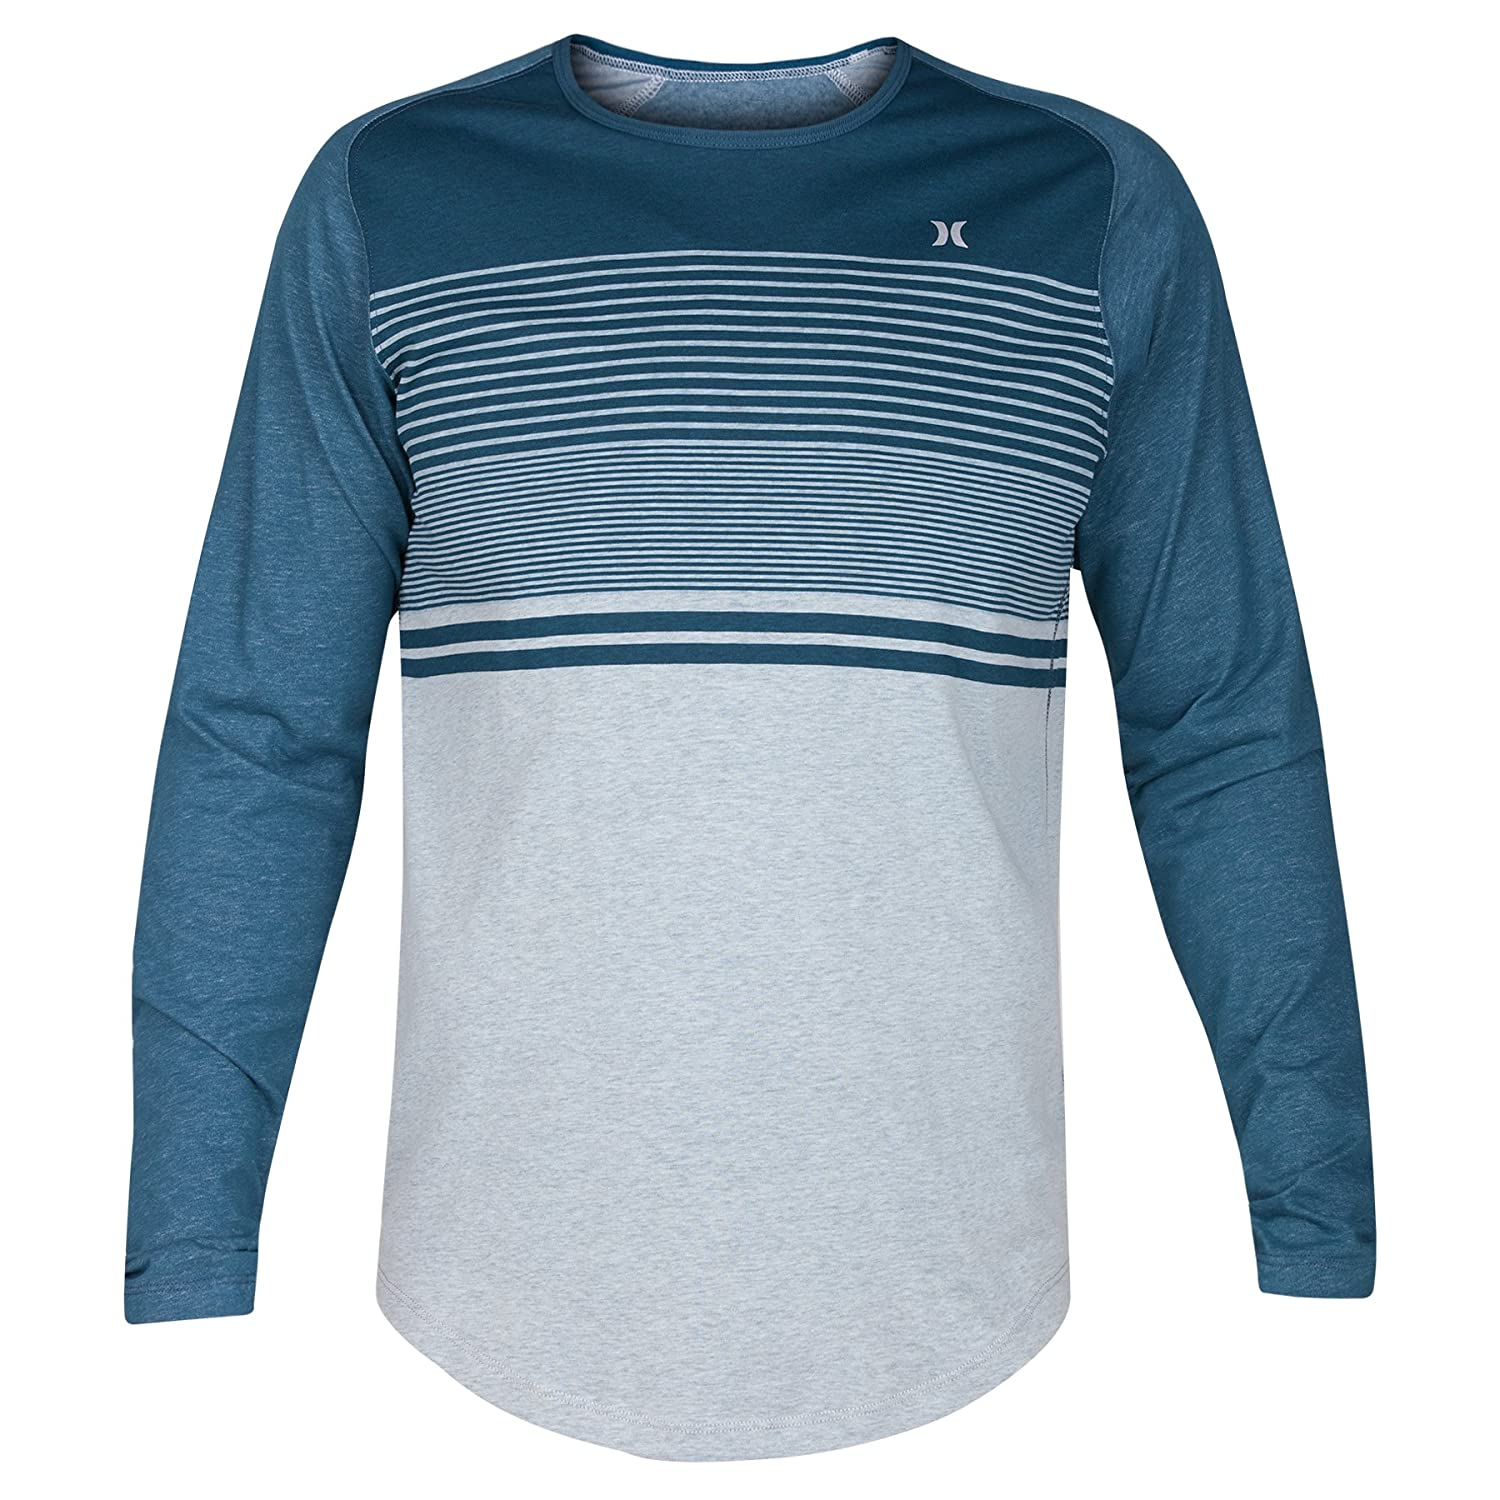 Hurley Men's Dri-Fit Lagos Coves Crew Long Sleeve Shirt MKT0006230